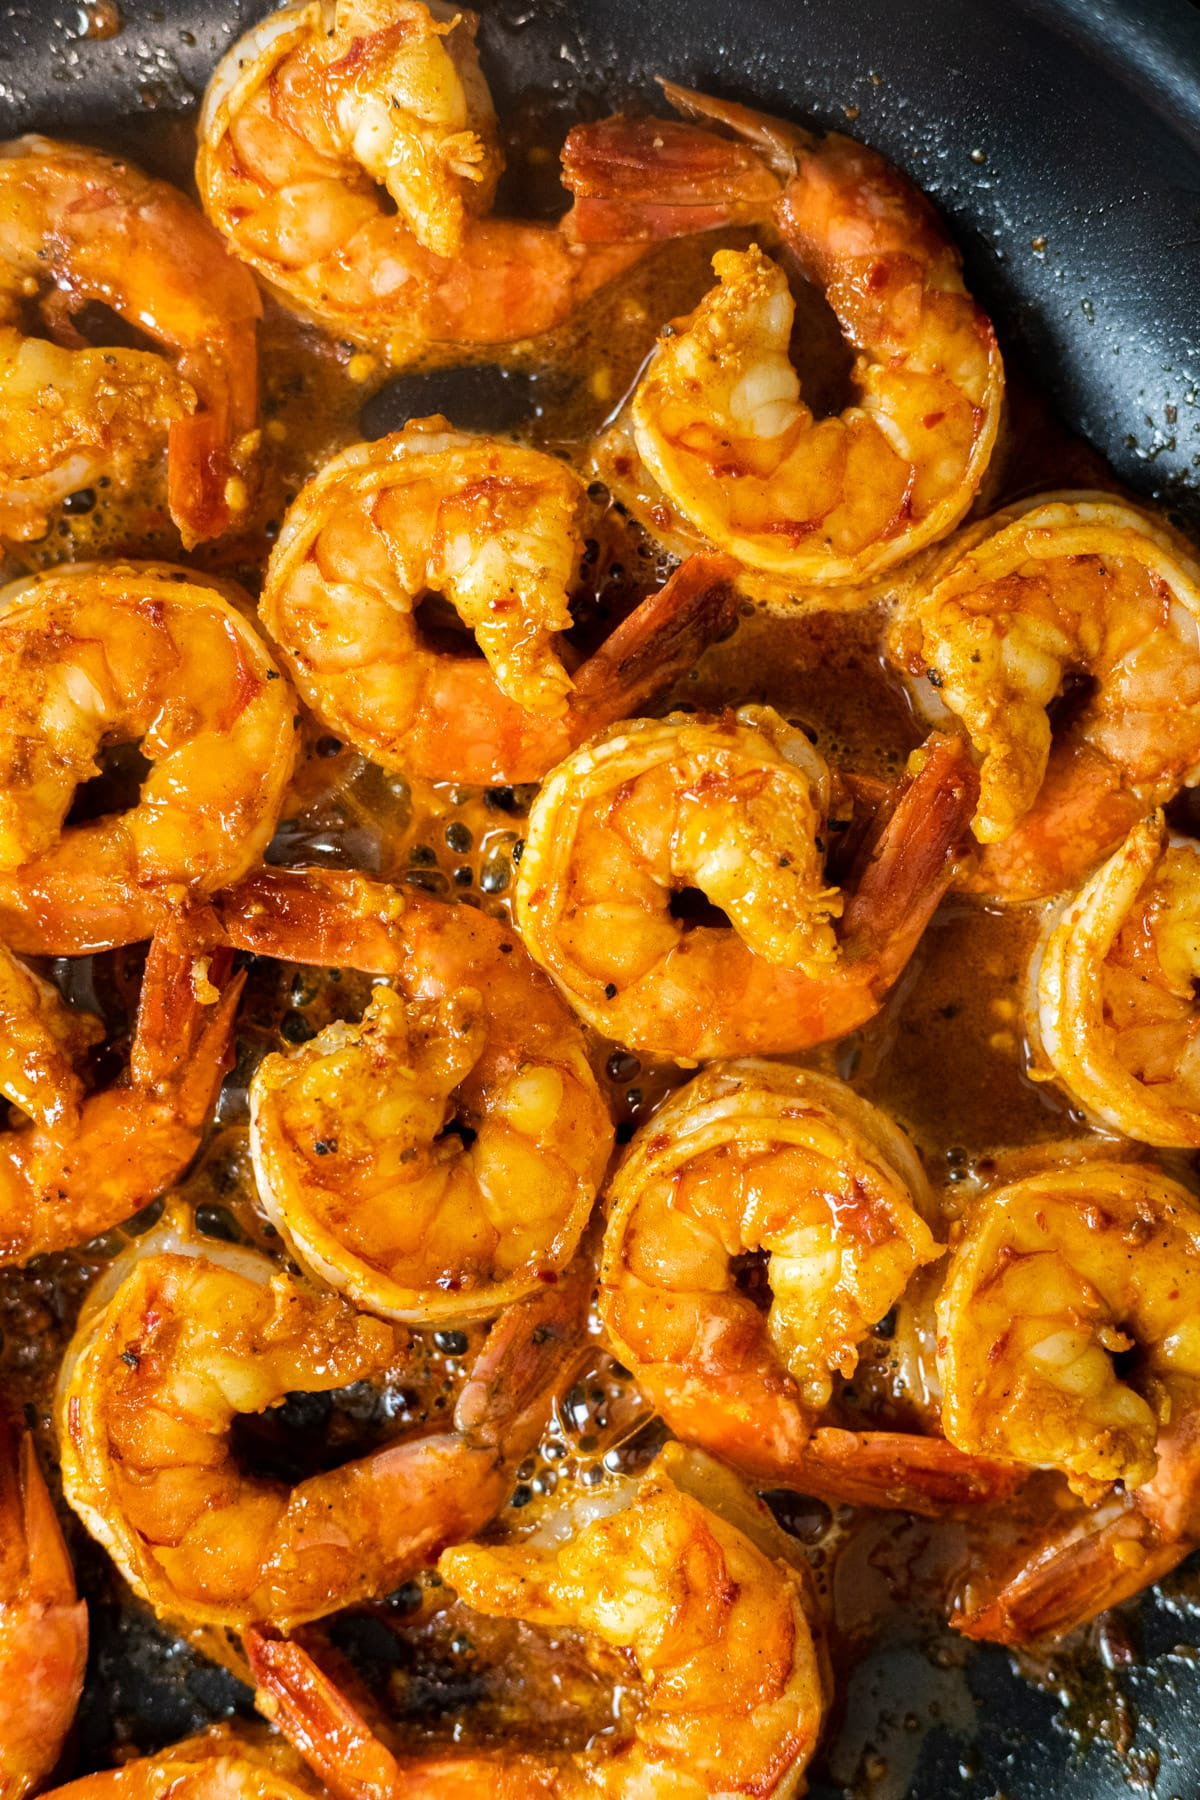 Cooked chili lime shrimp in a skillet.